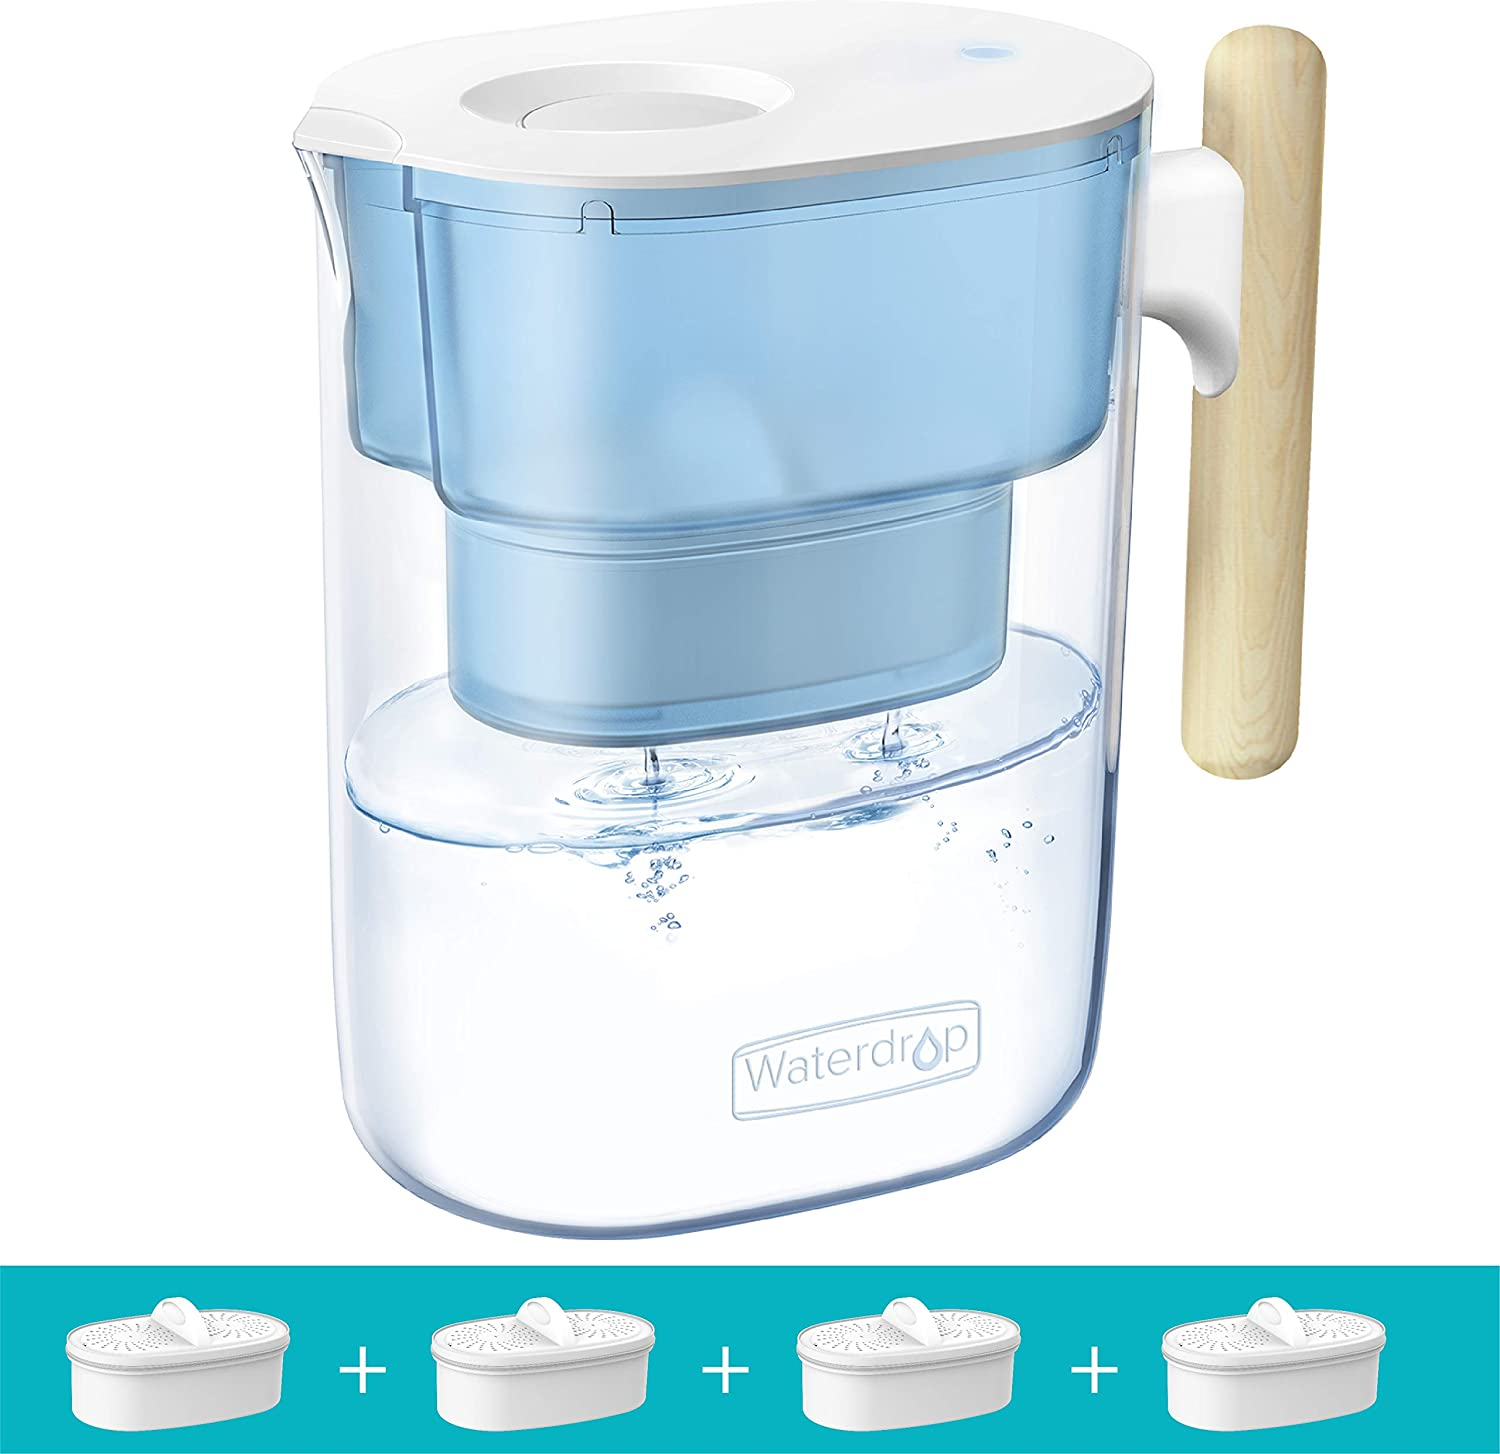 Waterdrop Chubby 10-Cup Water Filter Pitcher with 4 Filters, Long-Lasting (200 gallons), 5X Times Lifetime Filtration Jug, Reduces Lead, Fluoride, Chlorine and More, BPA Free, Blue